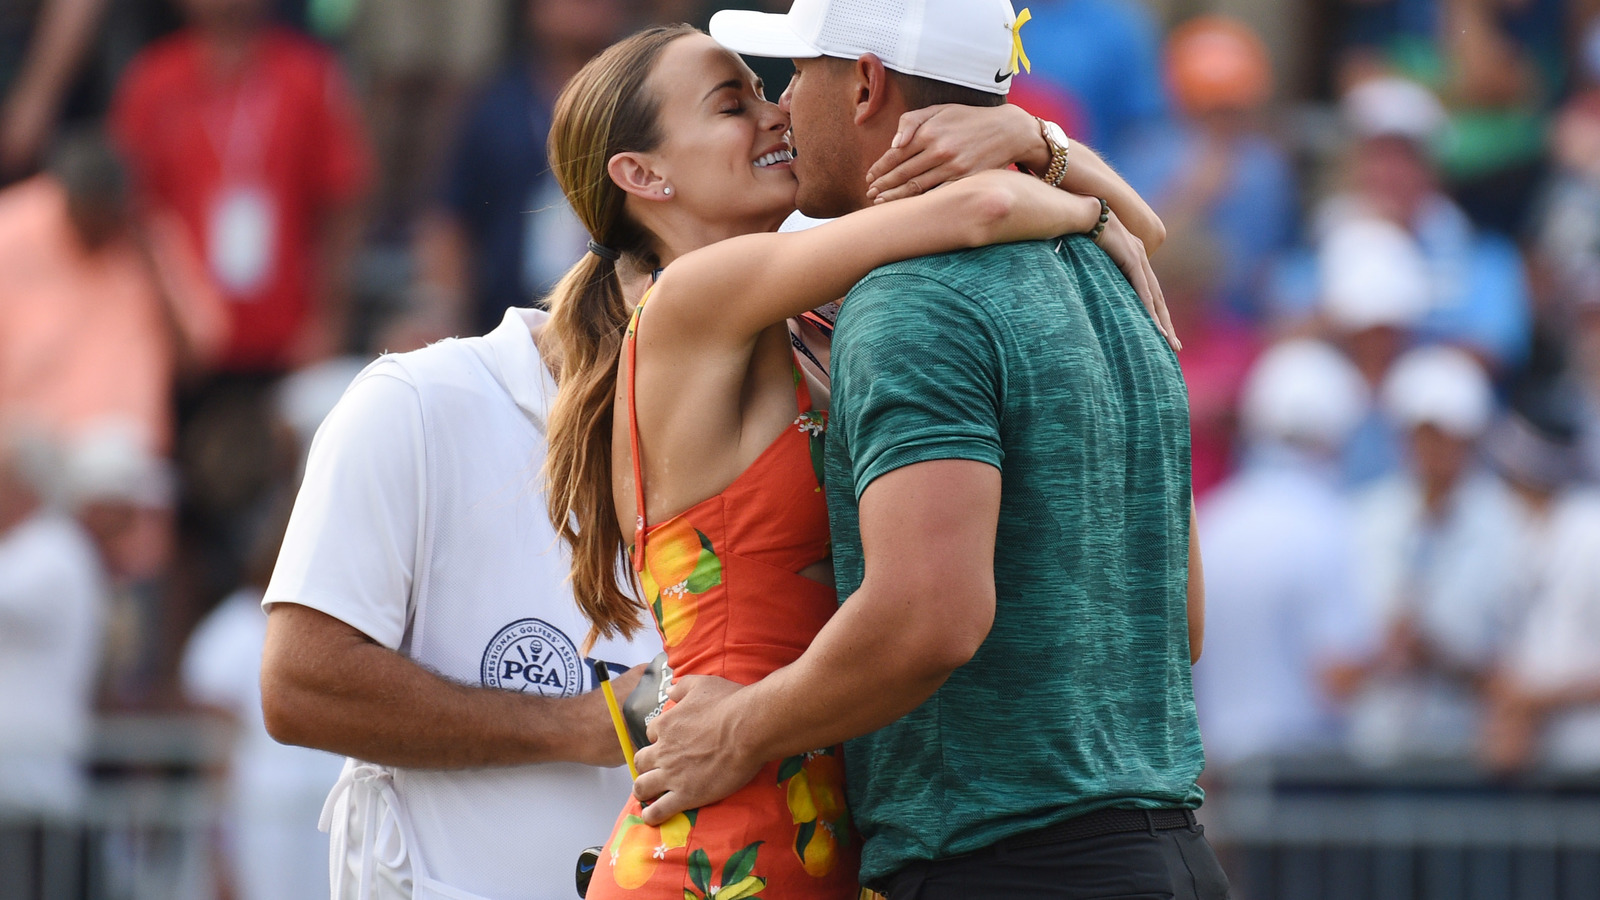 brooks koepka u0026 39 s girlfriend really loves tiger woods  hug